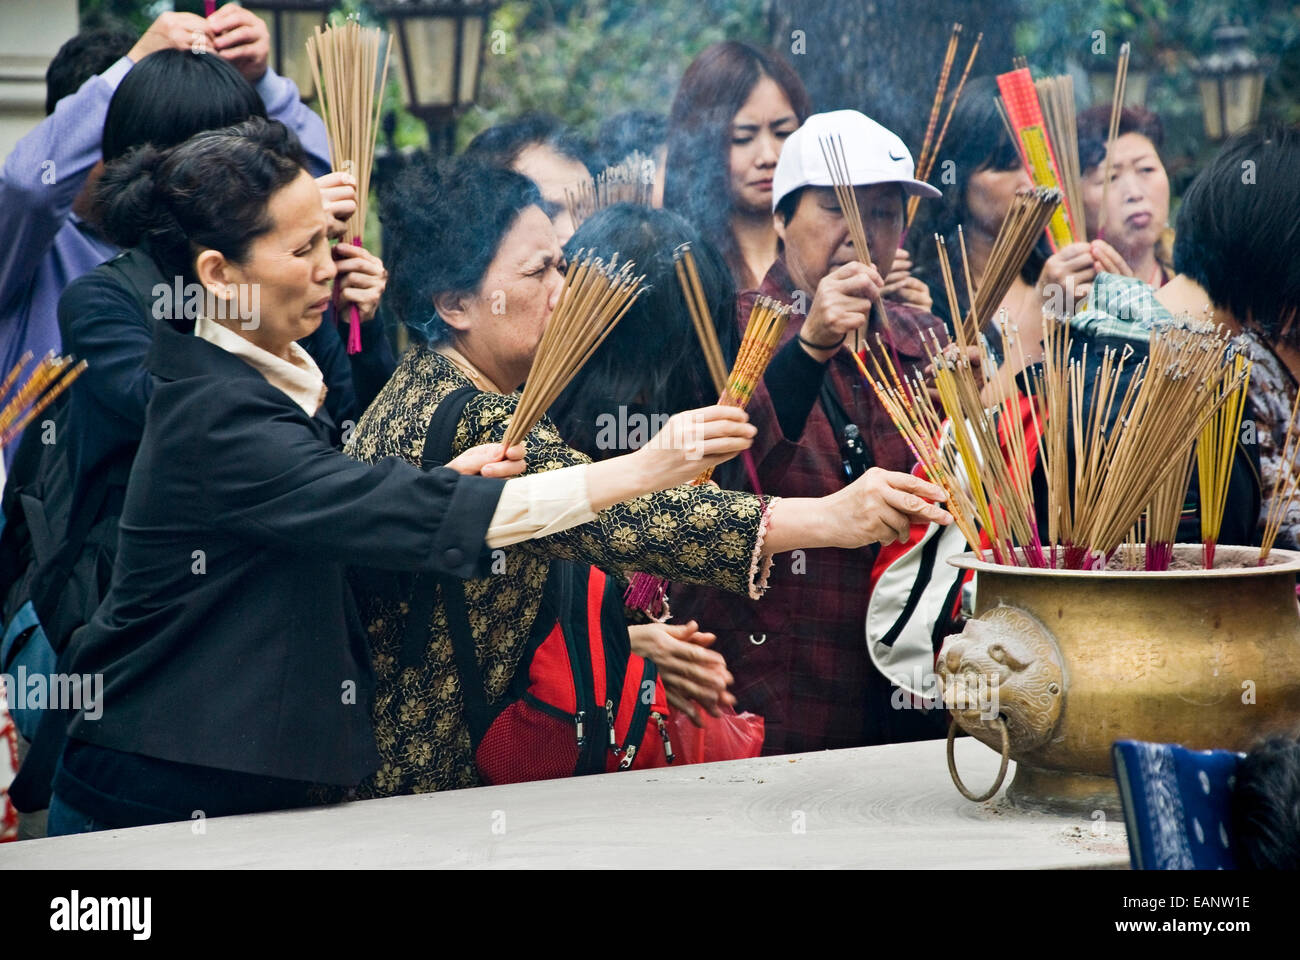 Women lightening incense in the Wong Tai Sin Temple in Kowloon, Hong Kong, China. - Stock Image